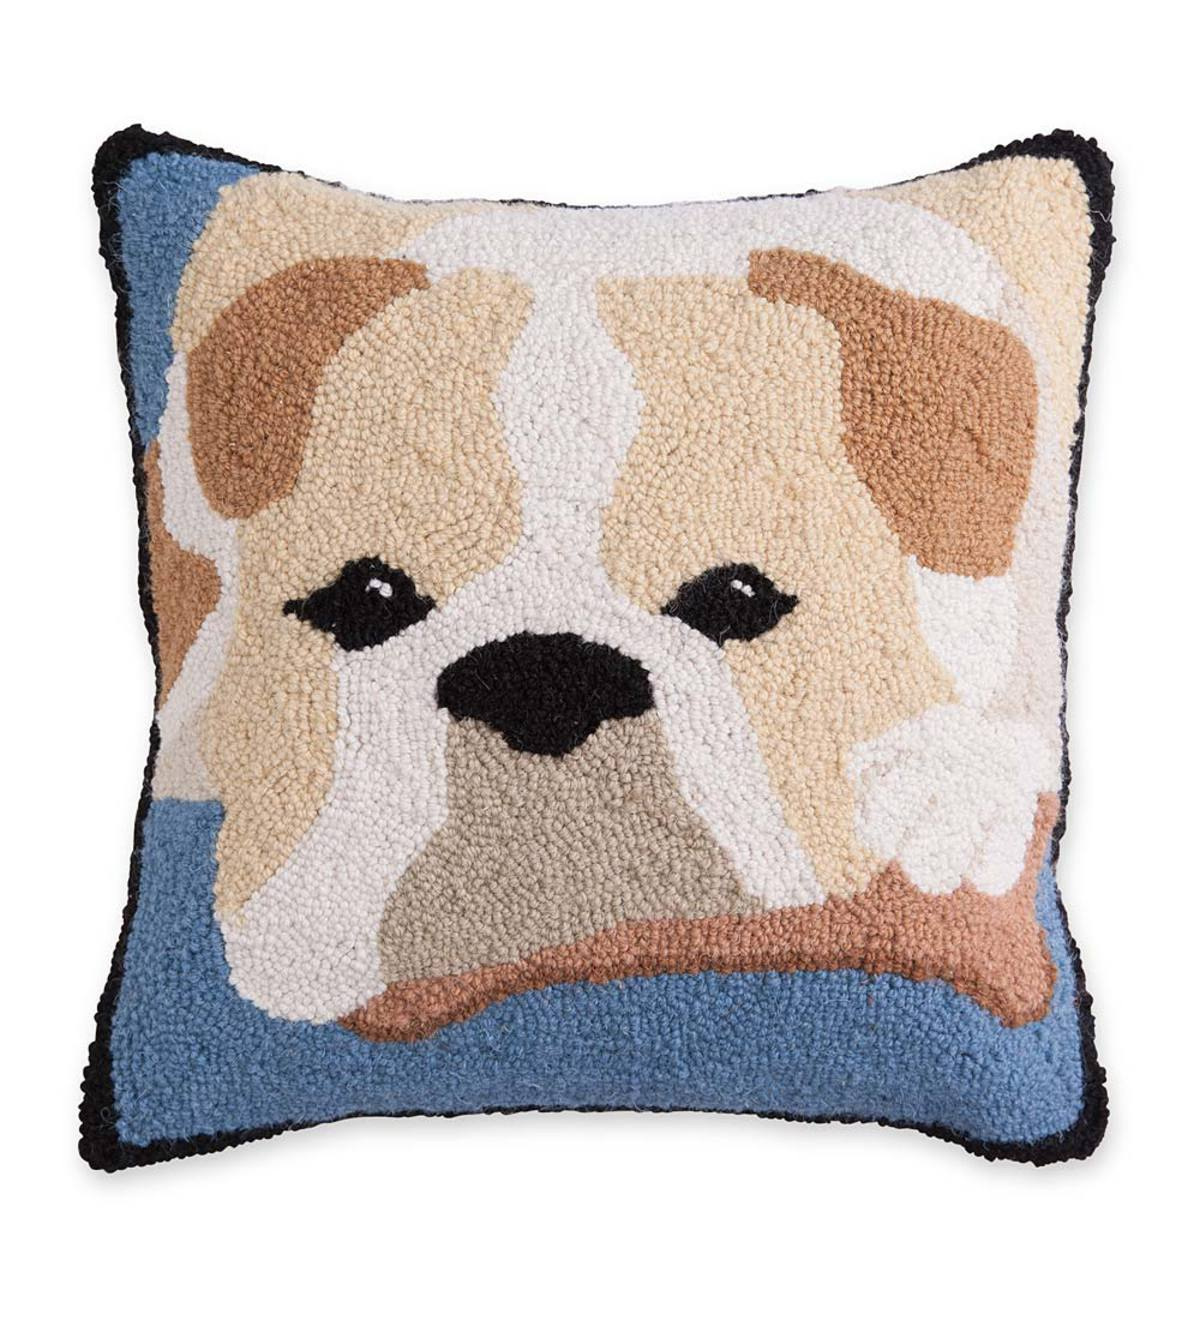 Hooked Wool Bulldog Throw Pillow